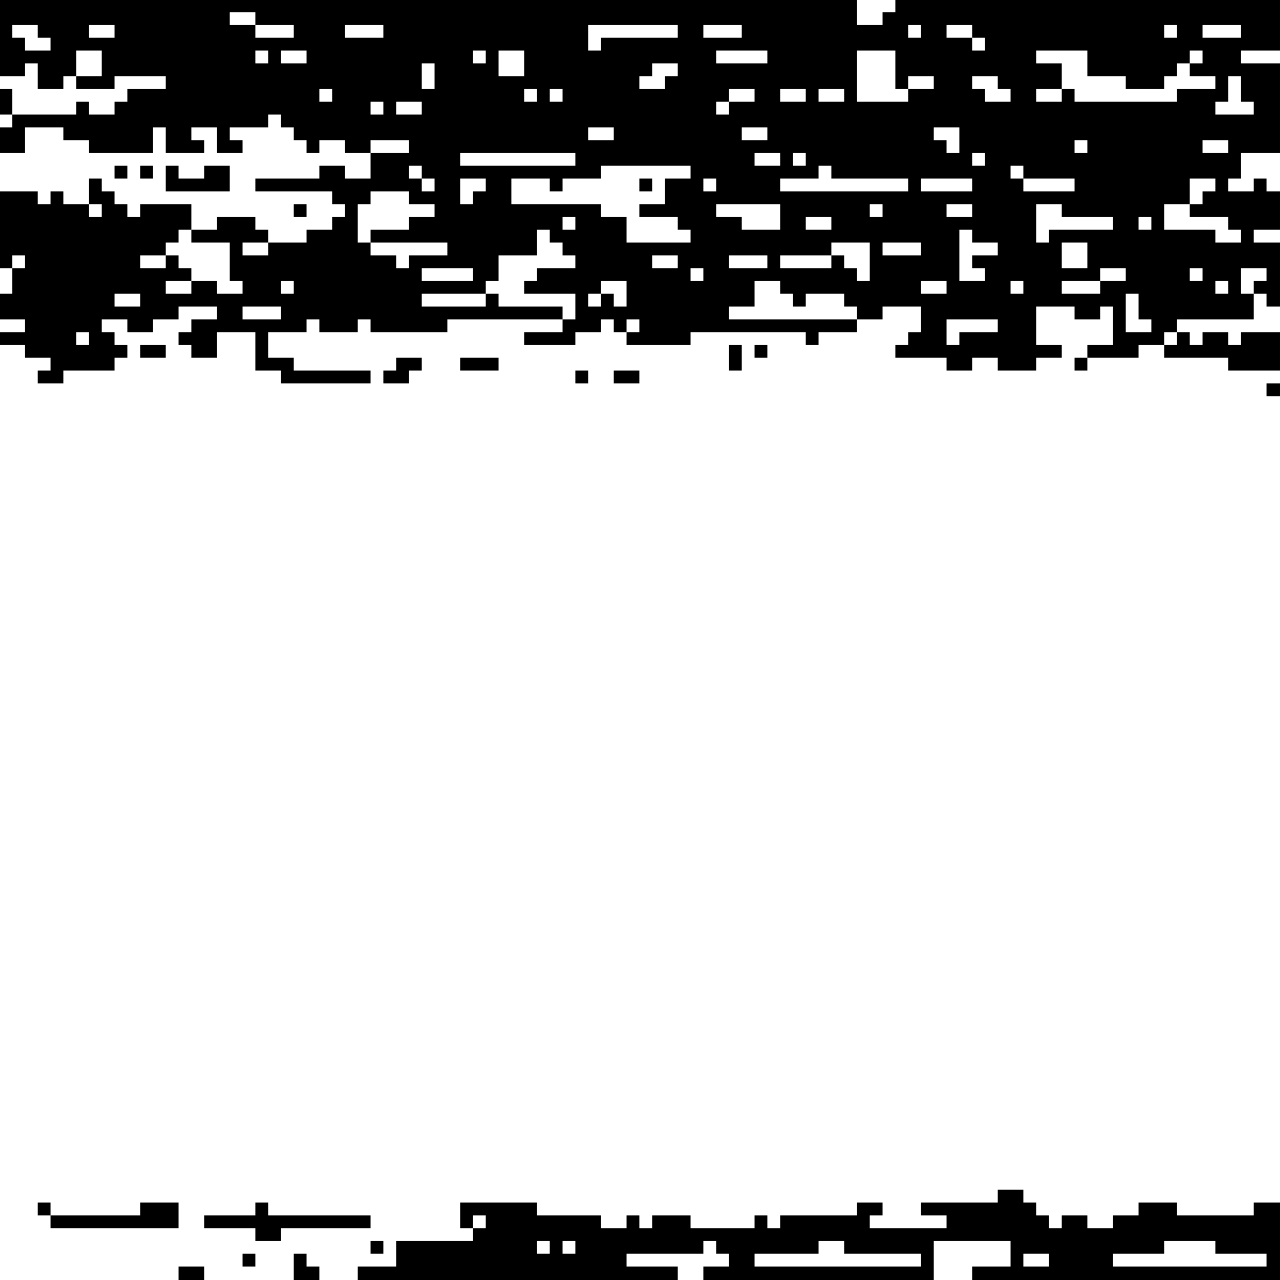 A minimalist pixel representation of VHS distortion.